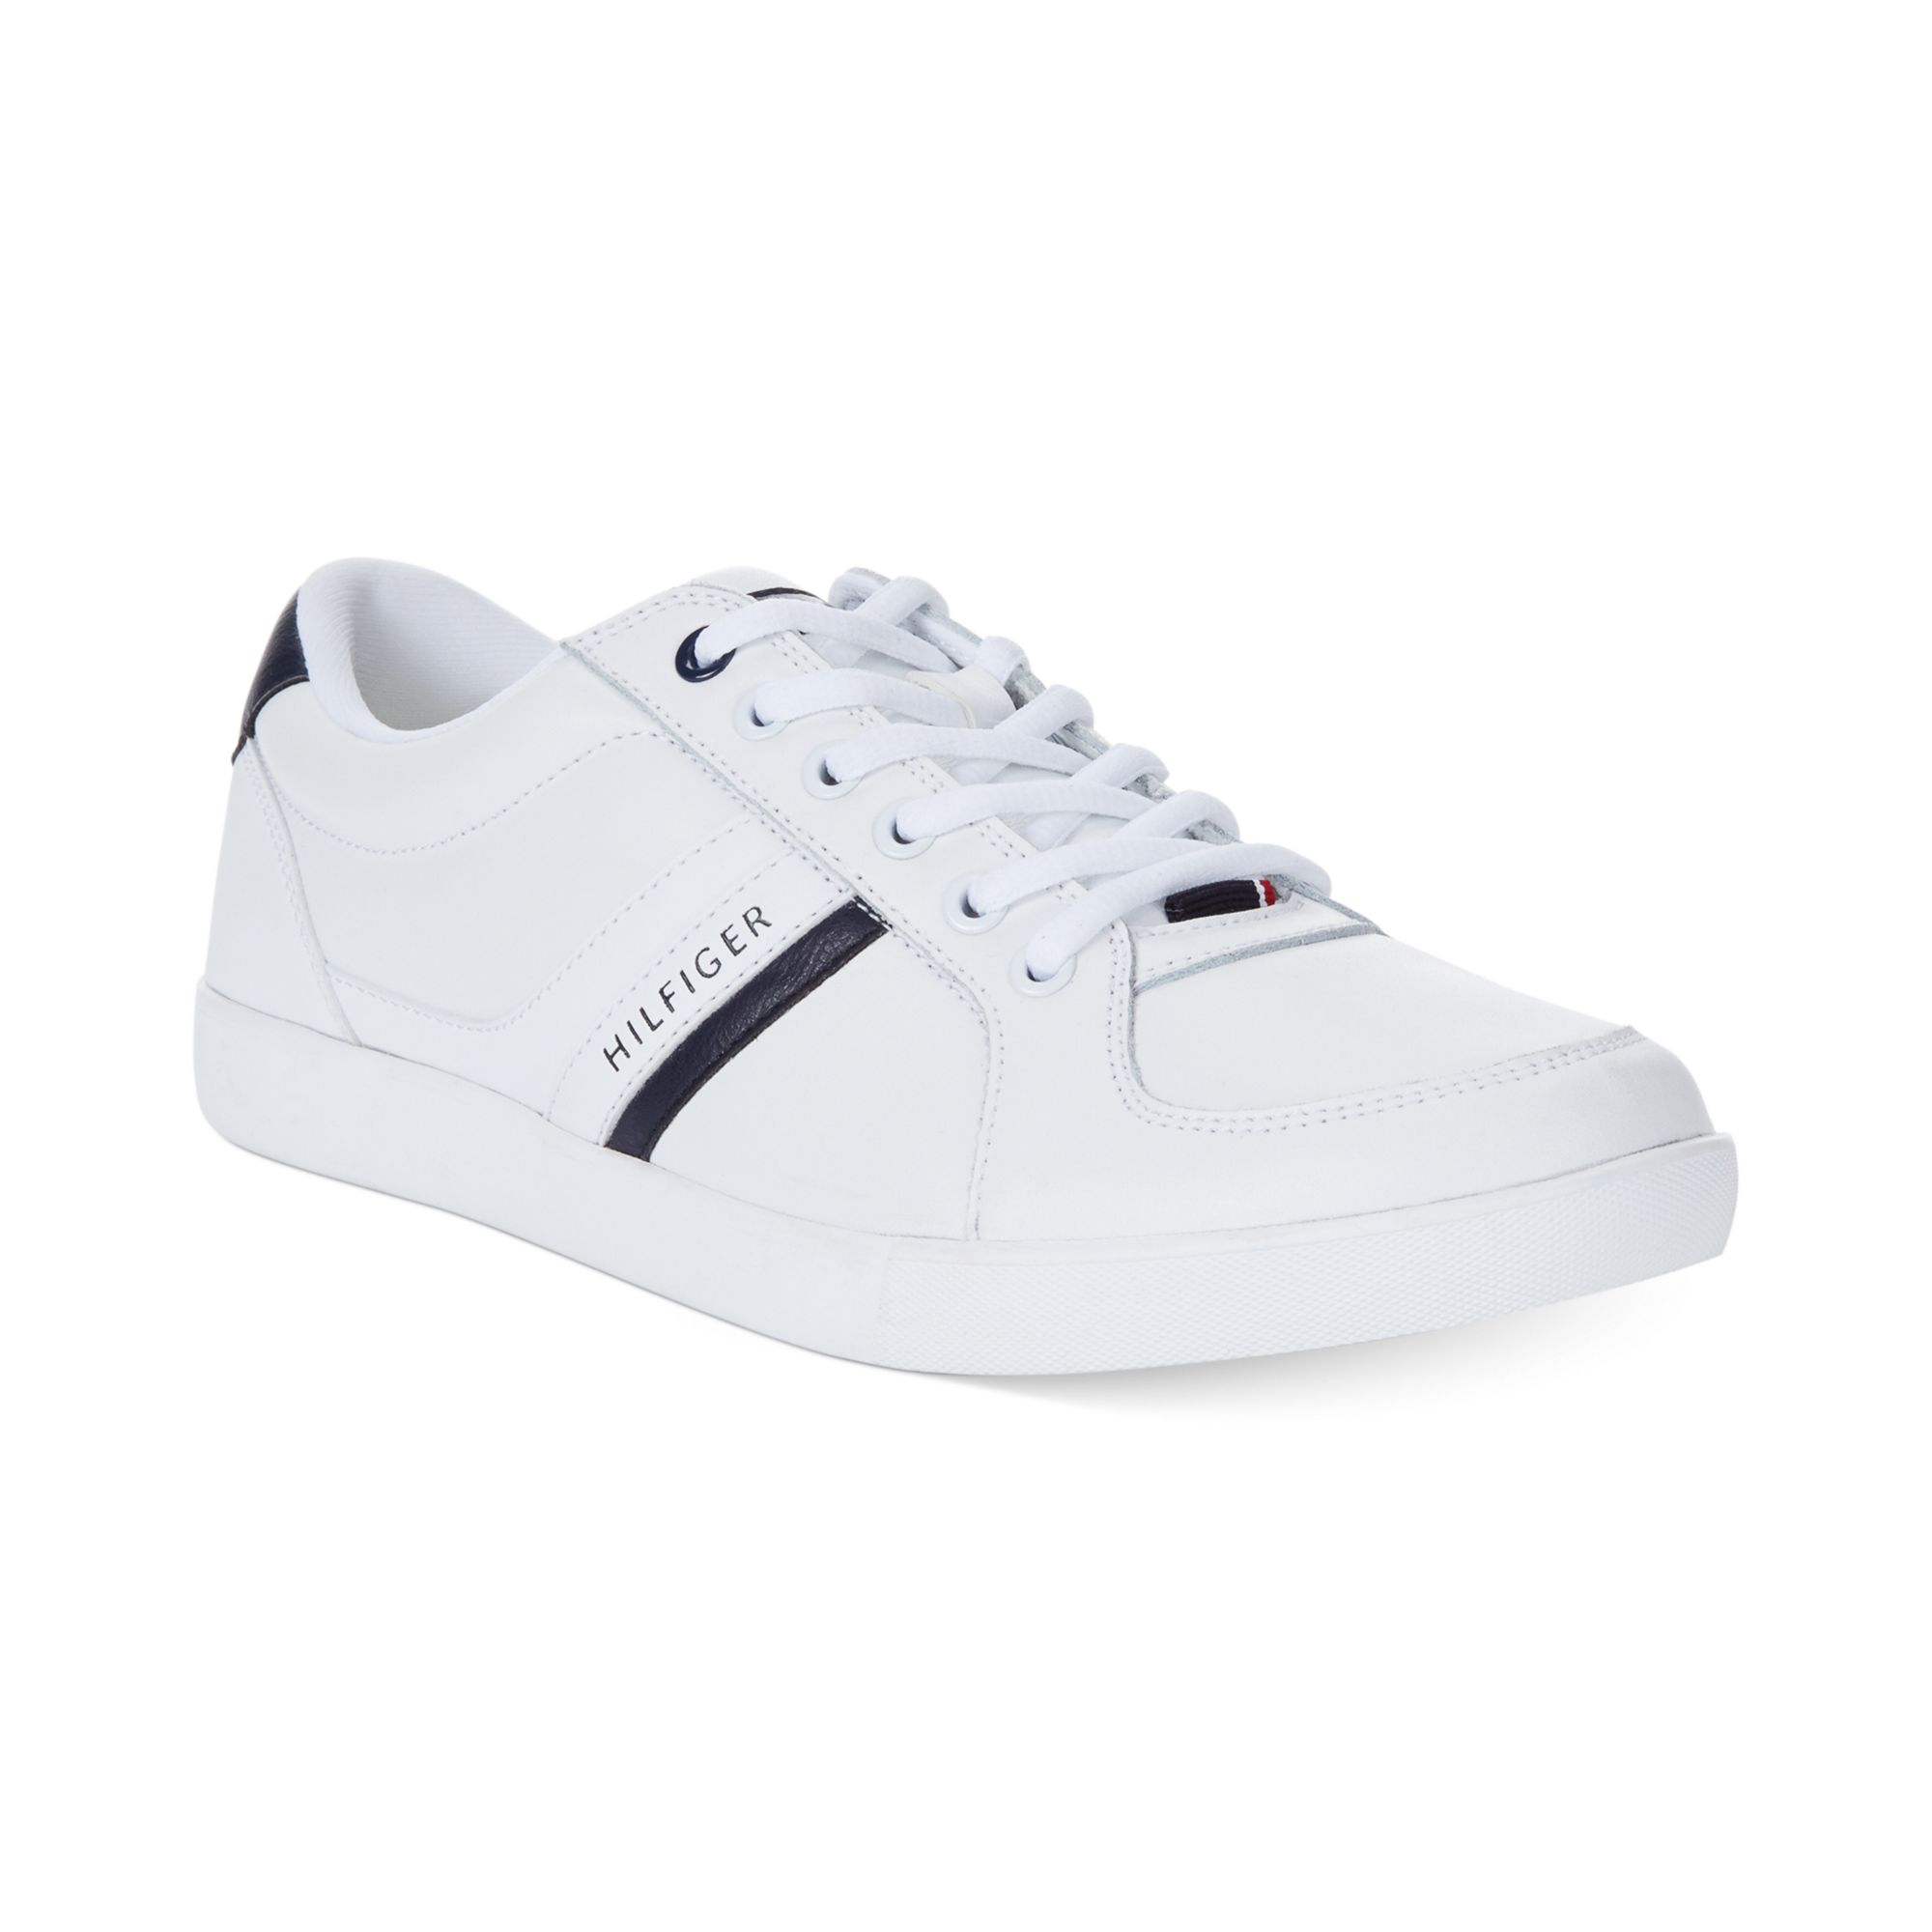 Tommy Hilfiger Thorne Sneakers In White For Men Lyst